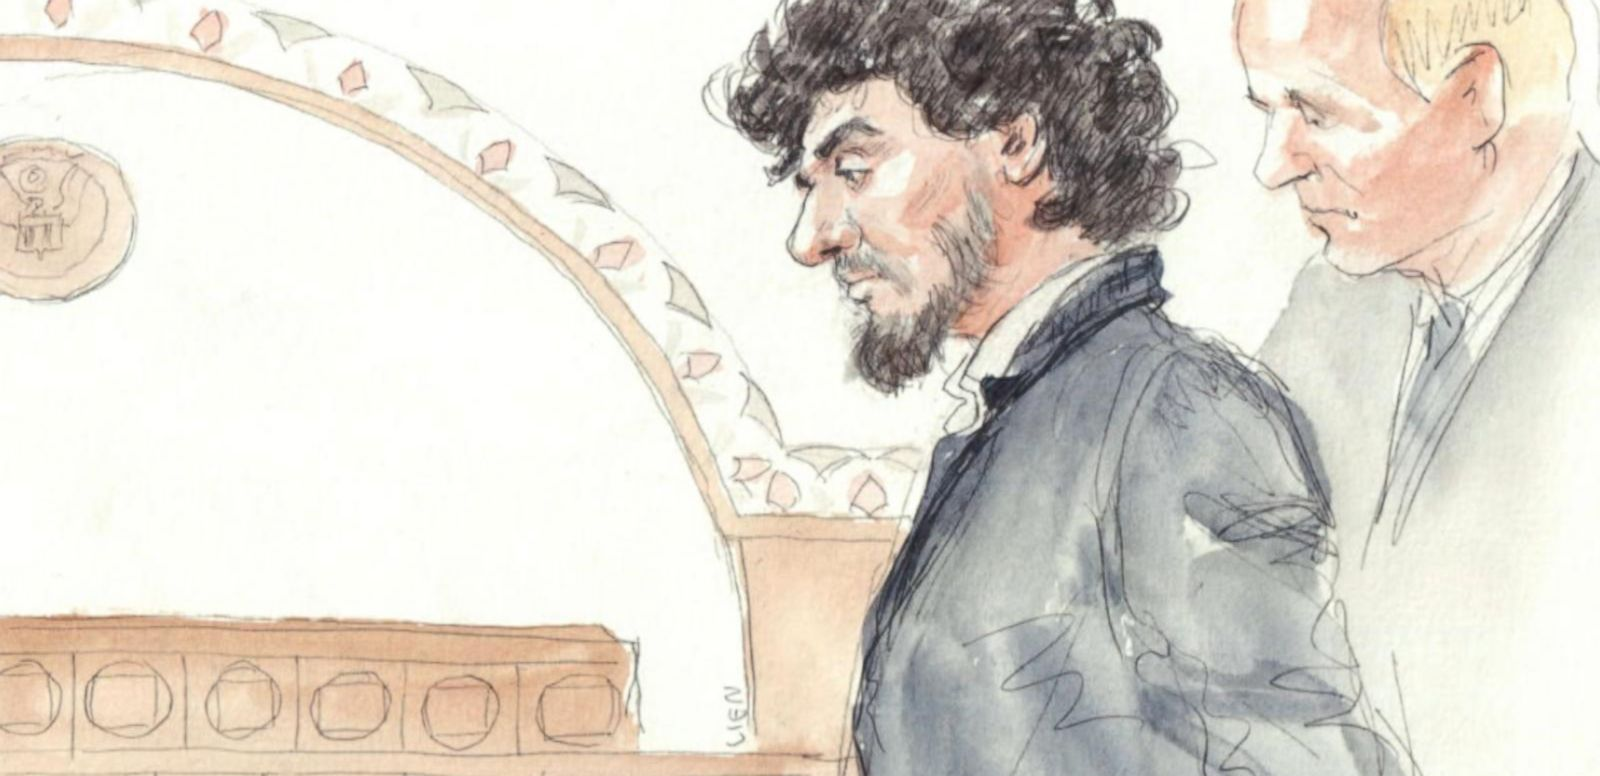 VIDEO: Accused Boston Marathon Bomber Dzhokhar Tsarnaev in Court